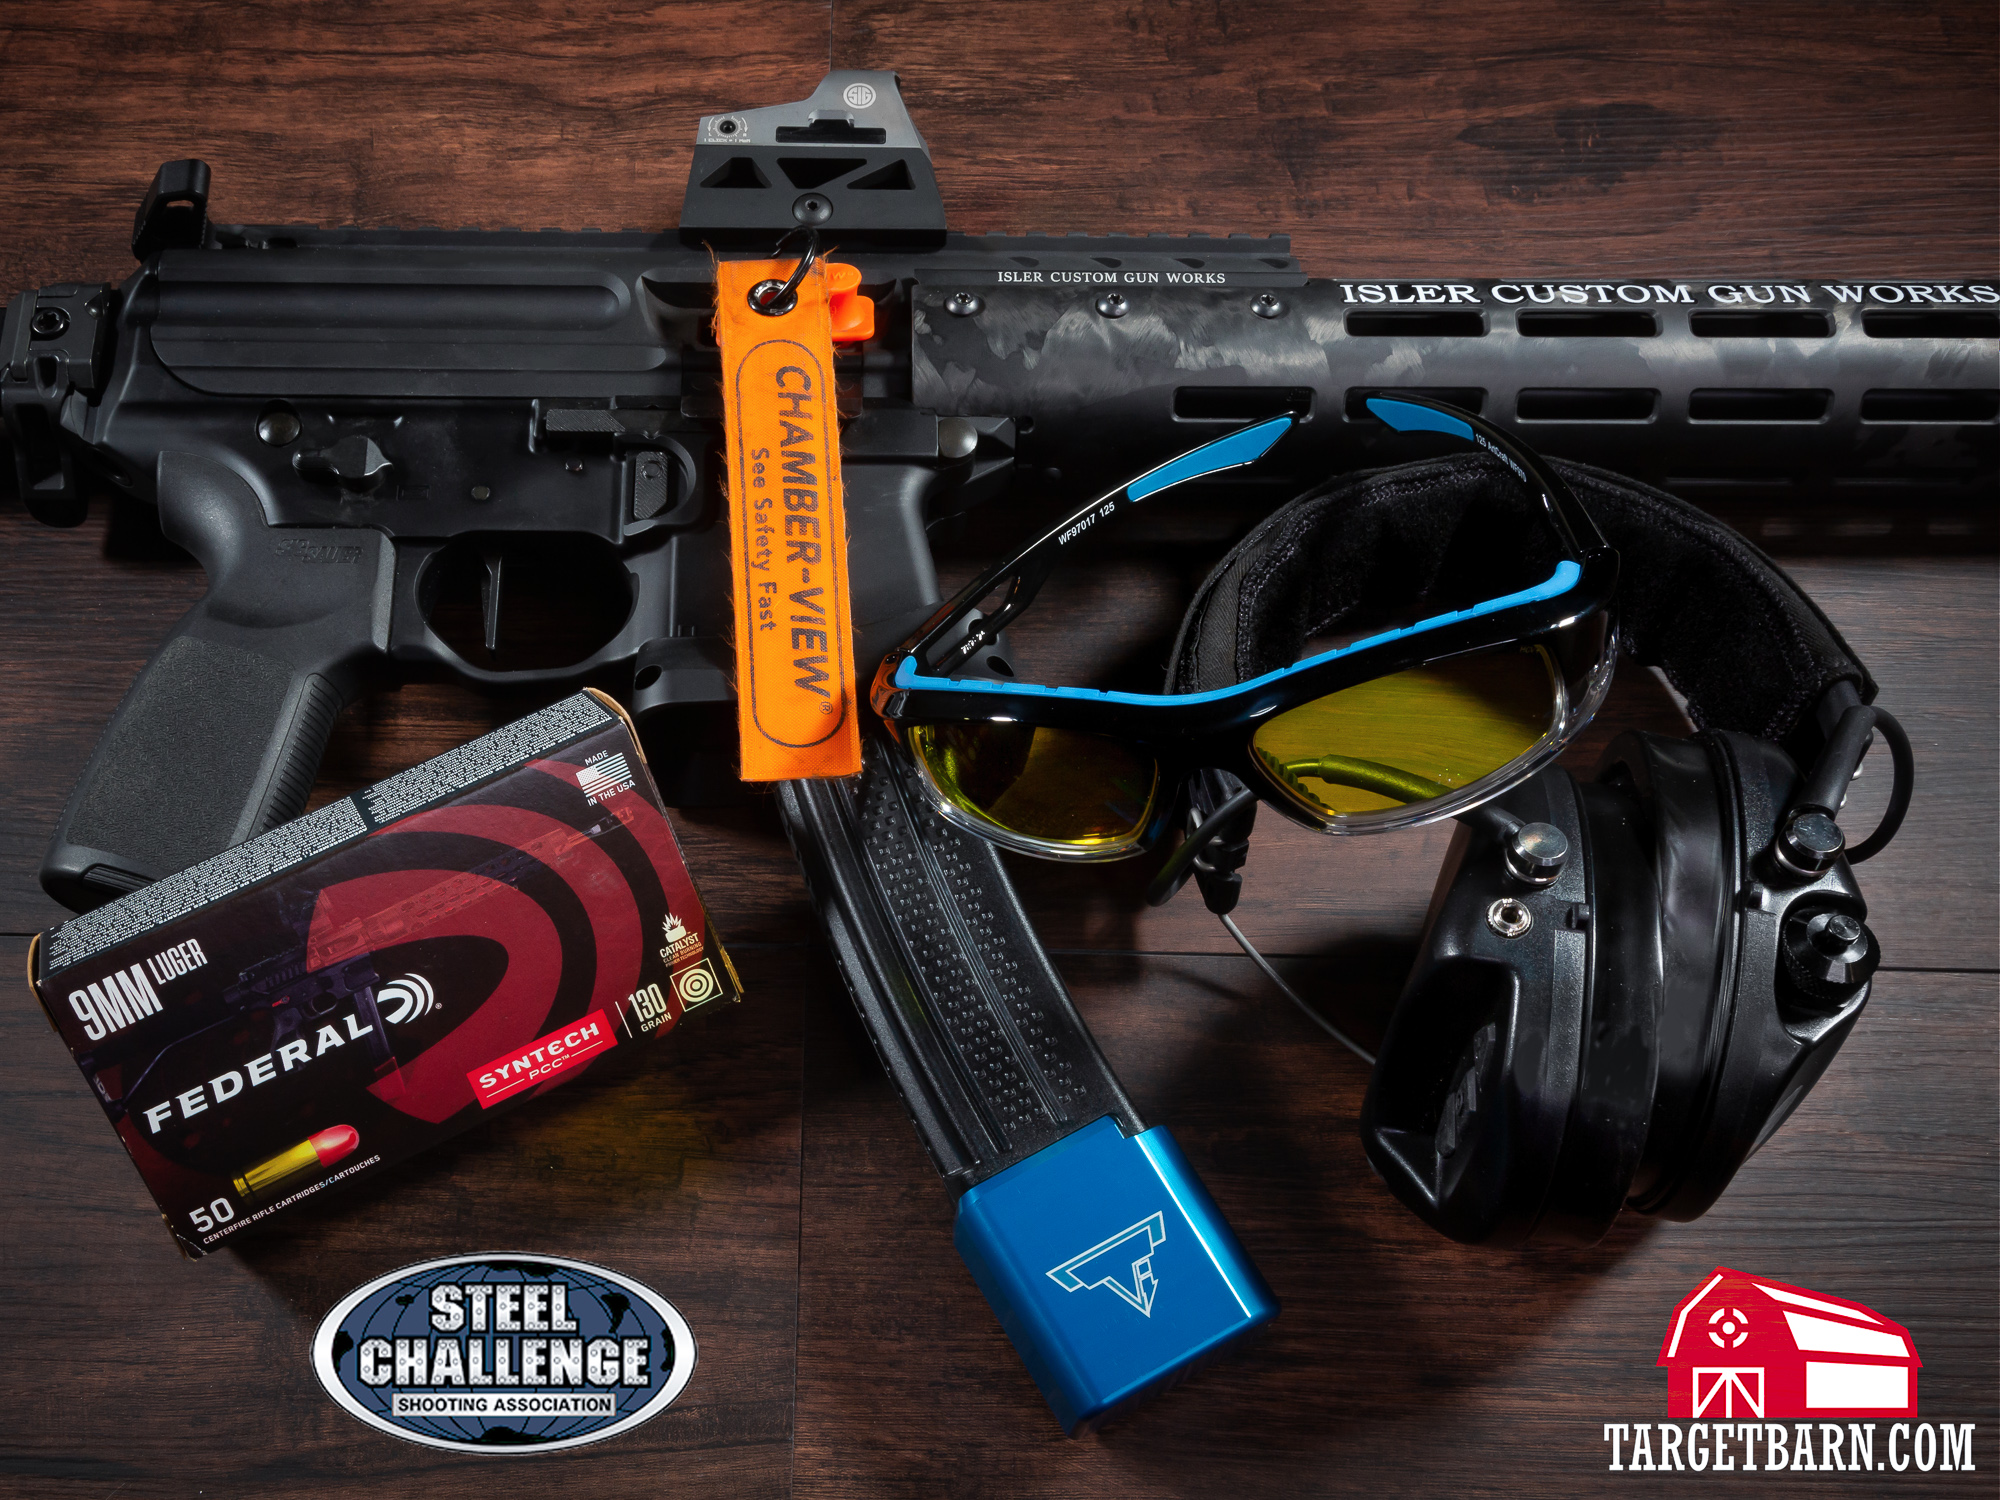 a pcc, eye protection, ear protection, chamber flag, and federal ammo